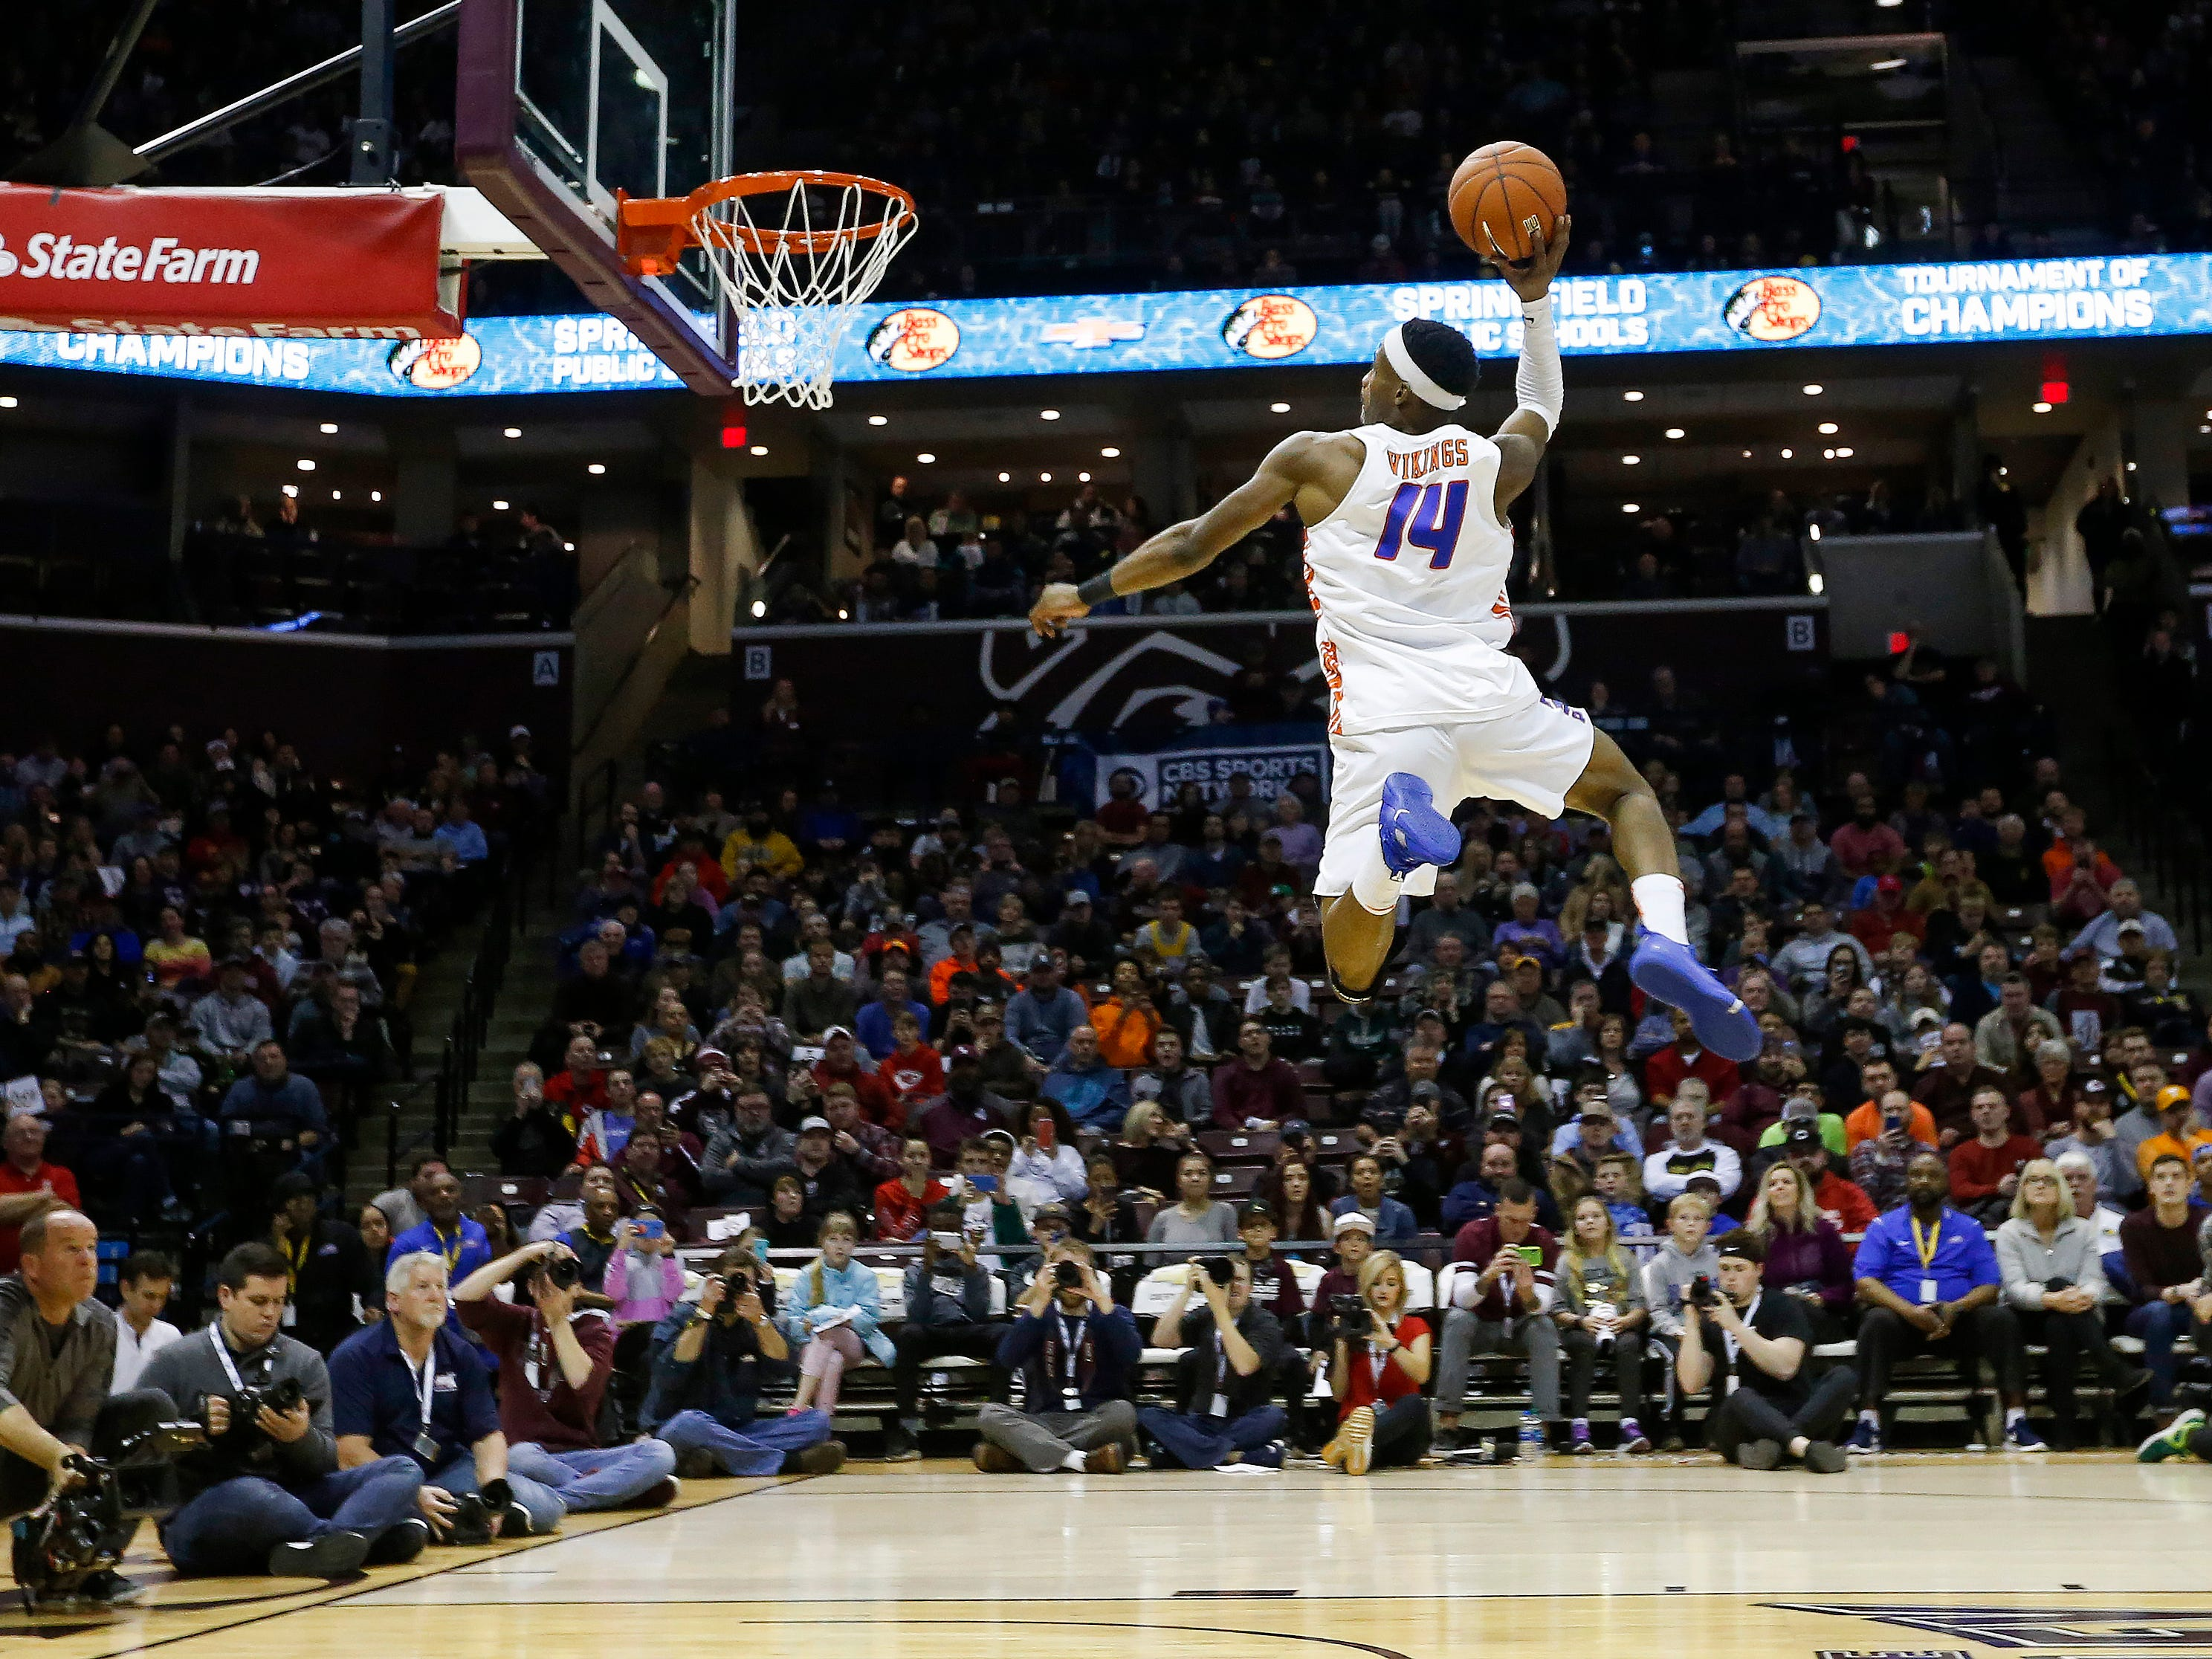 Micah Monroe, of Rainier Beach, competes in the slam dunk contest at the Bass Pro Shops Tournament of Champions at JQH Arena on Saturday, Jan. 19, 2019.